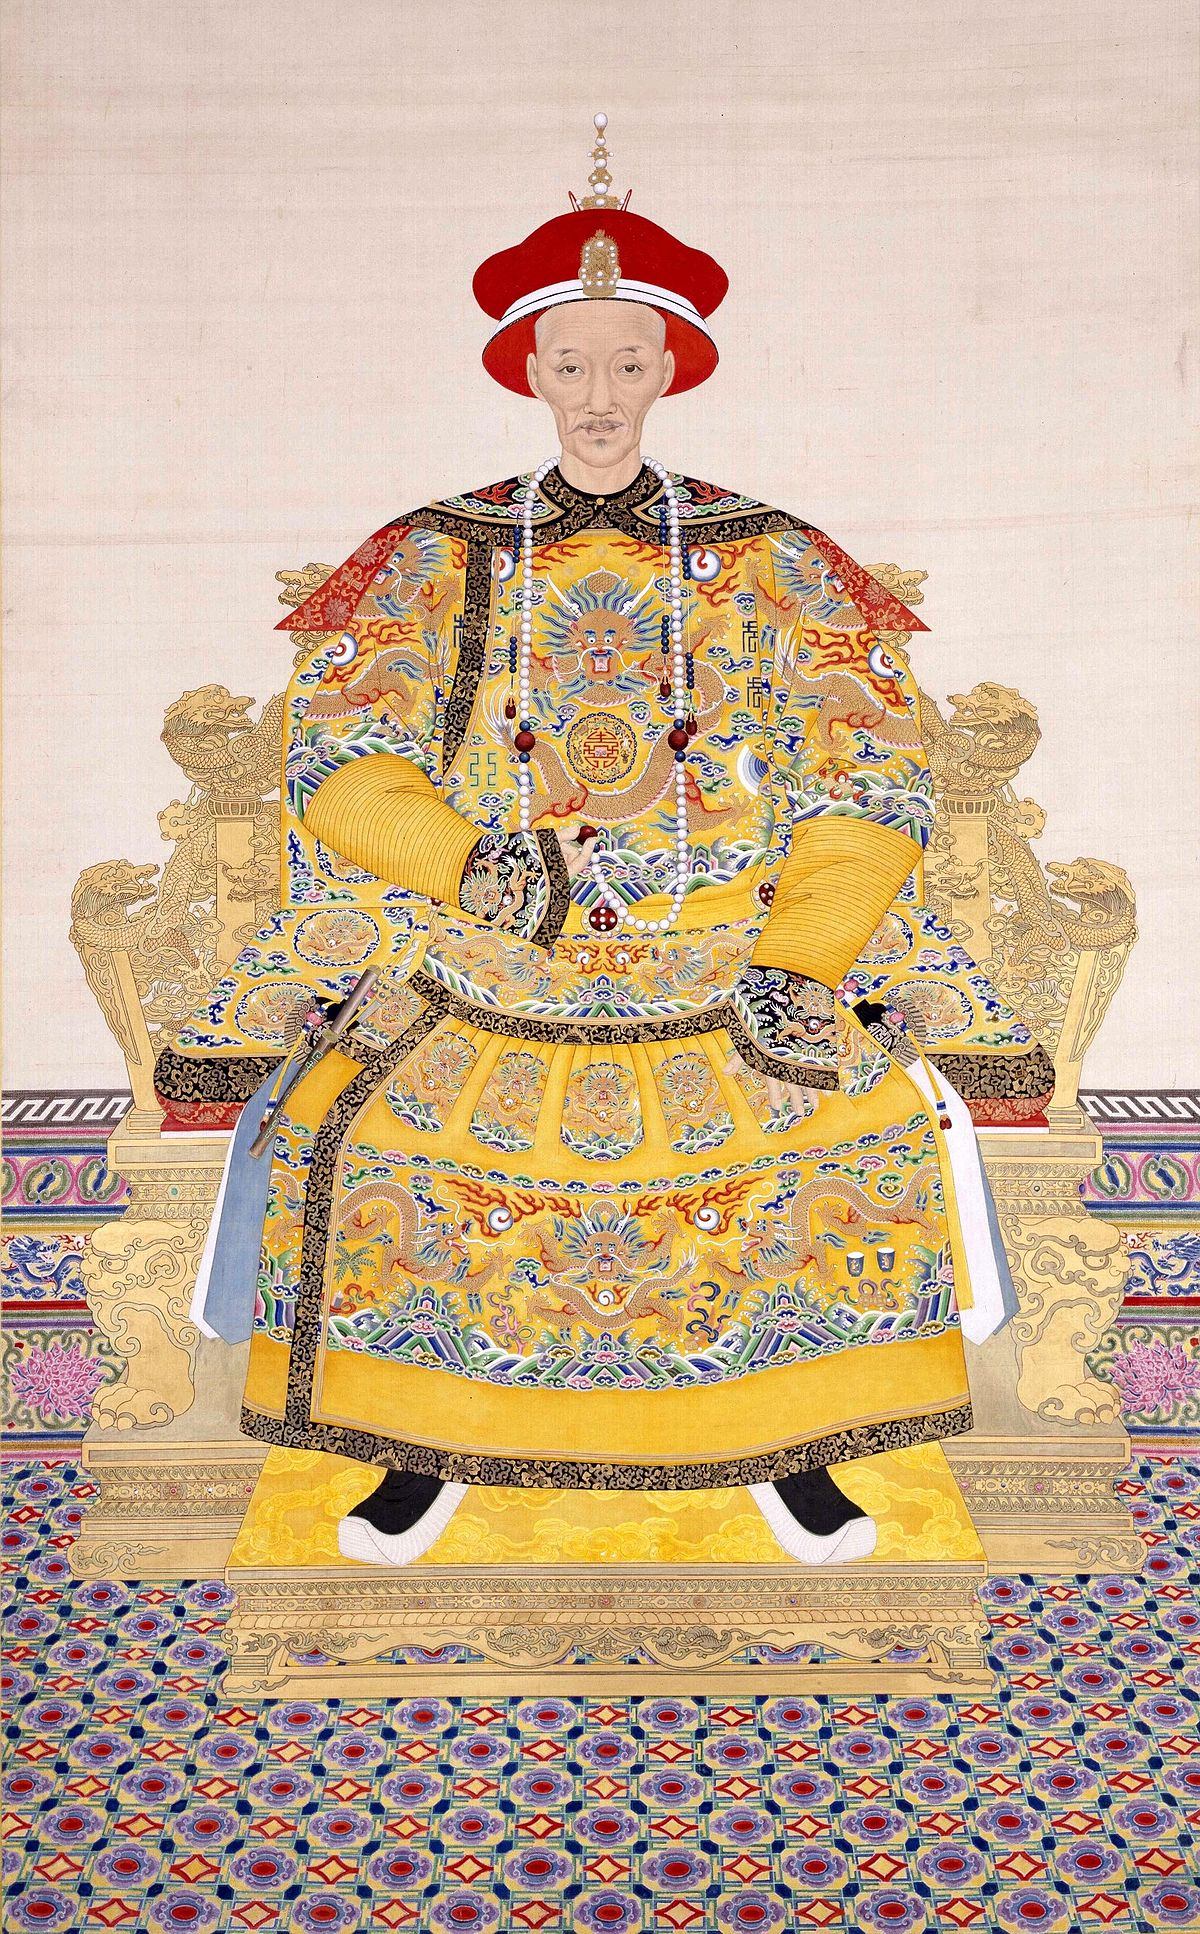 The Emperor Seven Tarot Cards From Different Packs Other: Daoguang Emperor